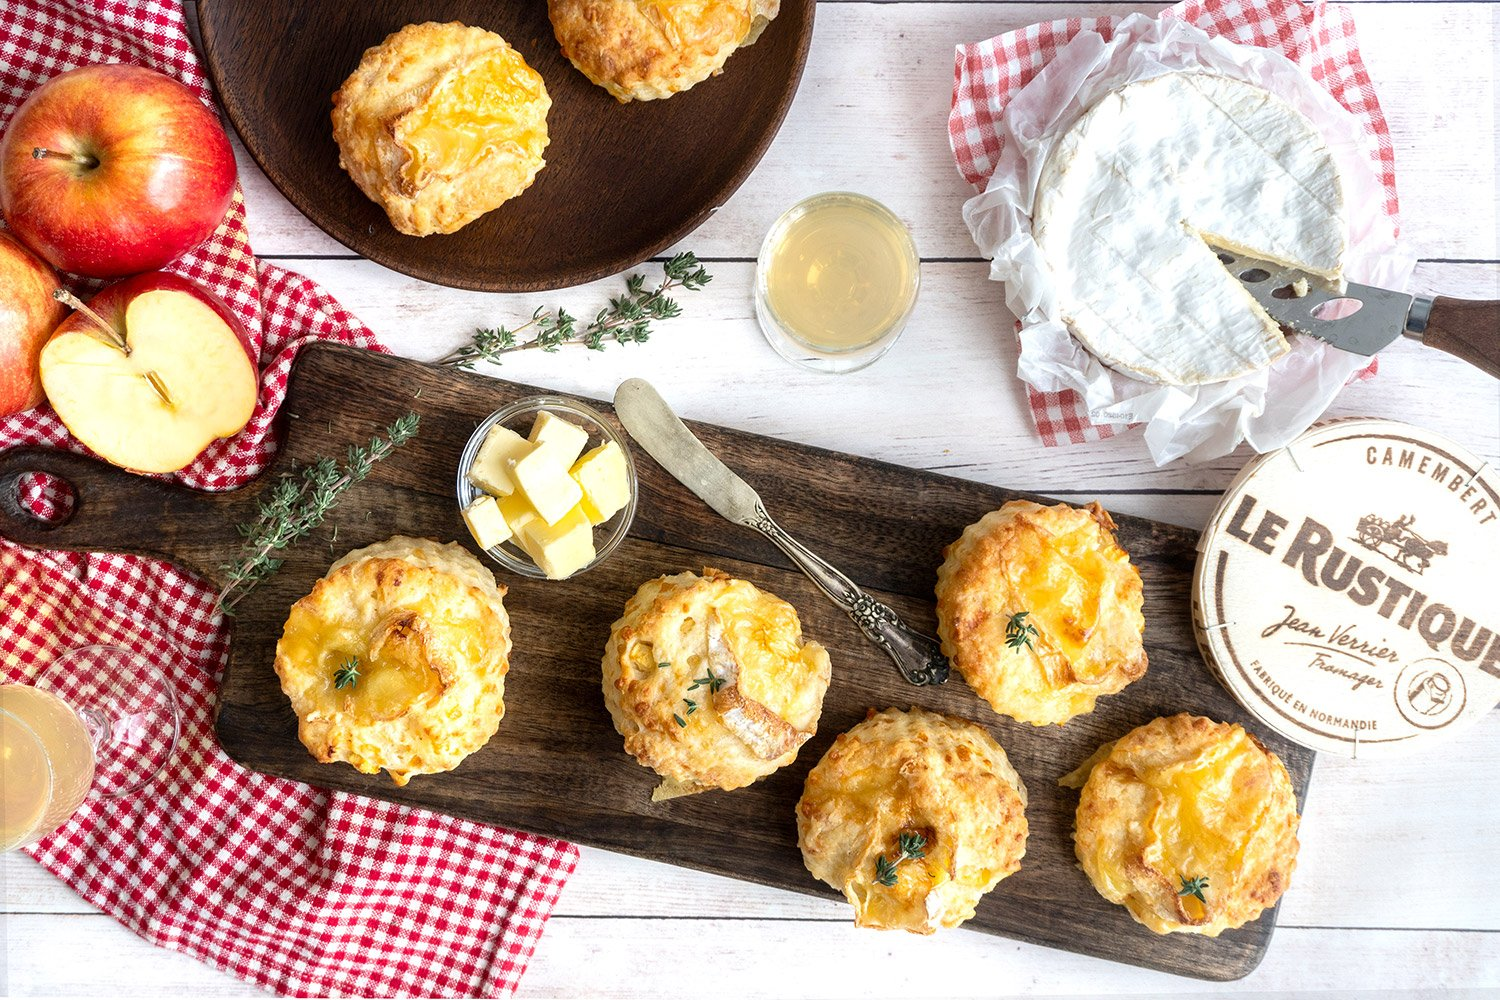 Recipe -  Grand Agropur Cheddar, apple and camembert Le Rustique scones